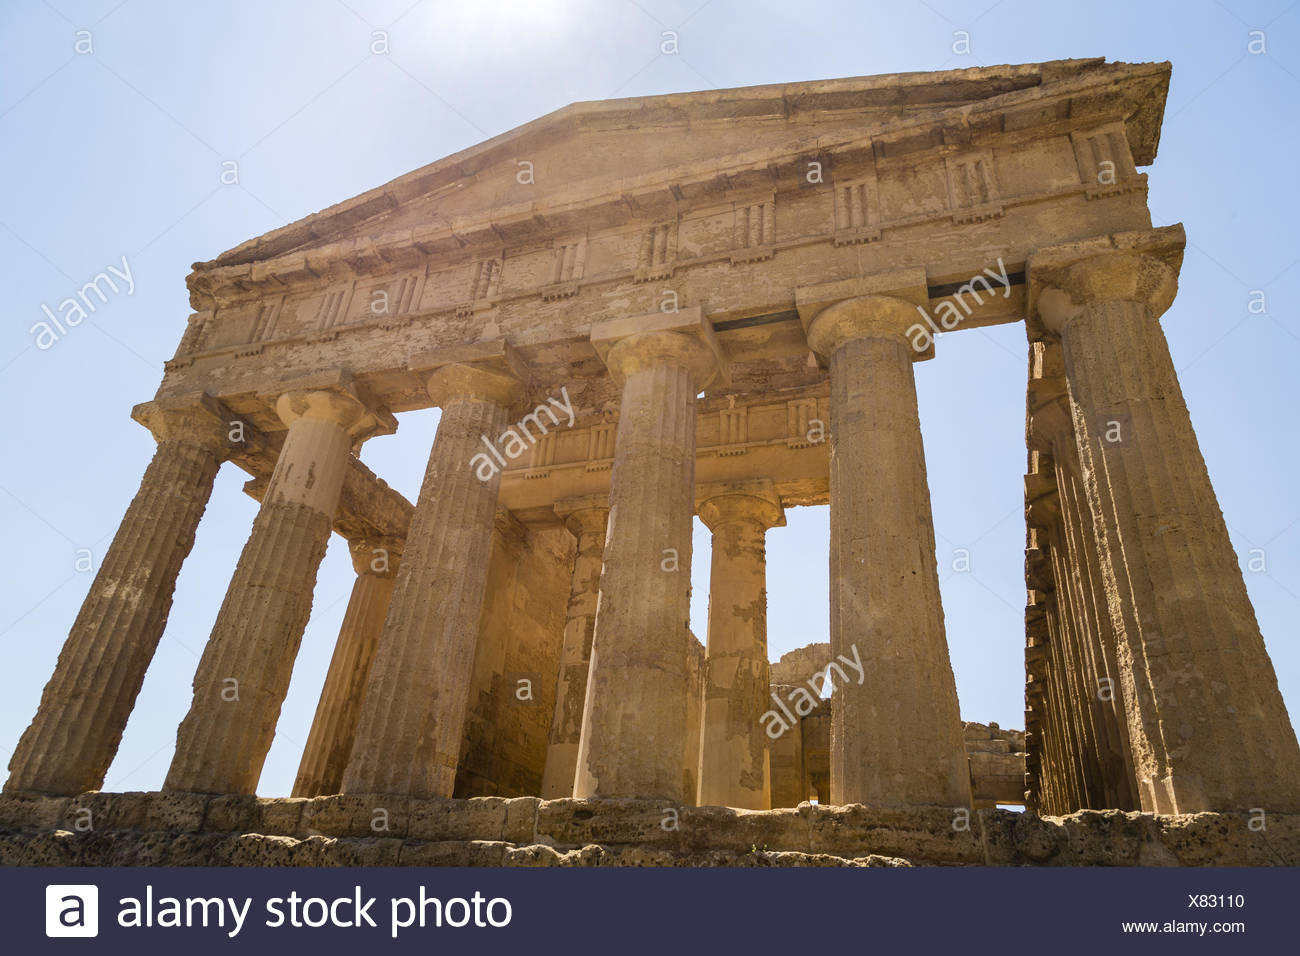 Temple of Concordia, Agrigento, Sicily - Stock Image